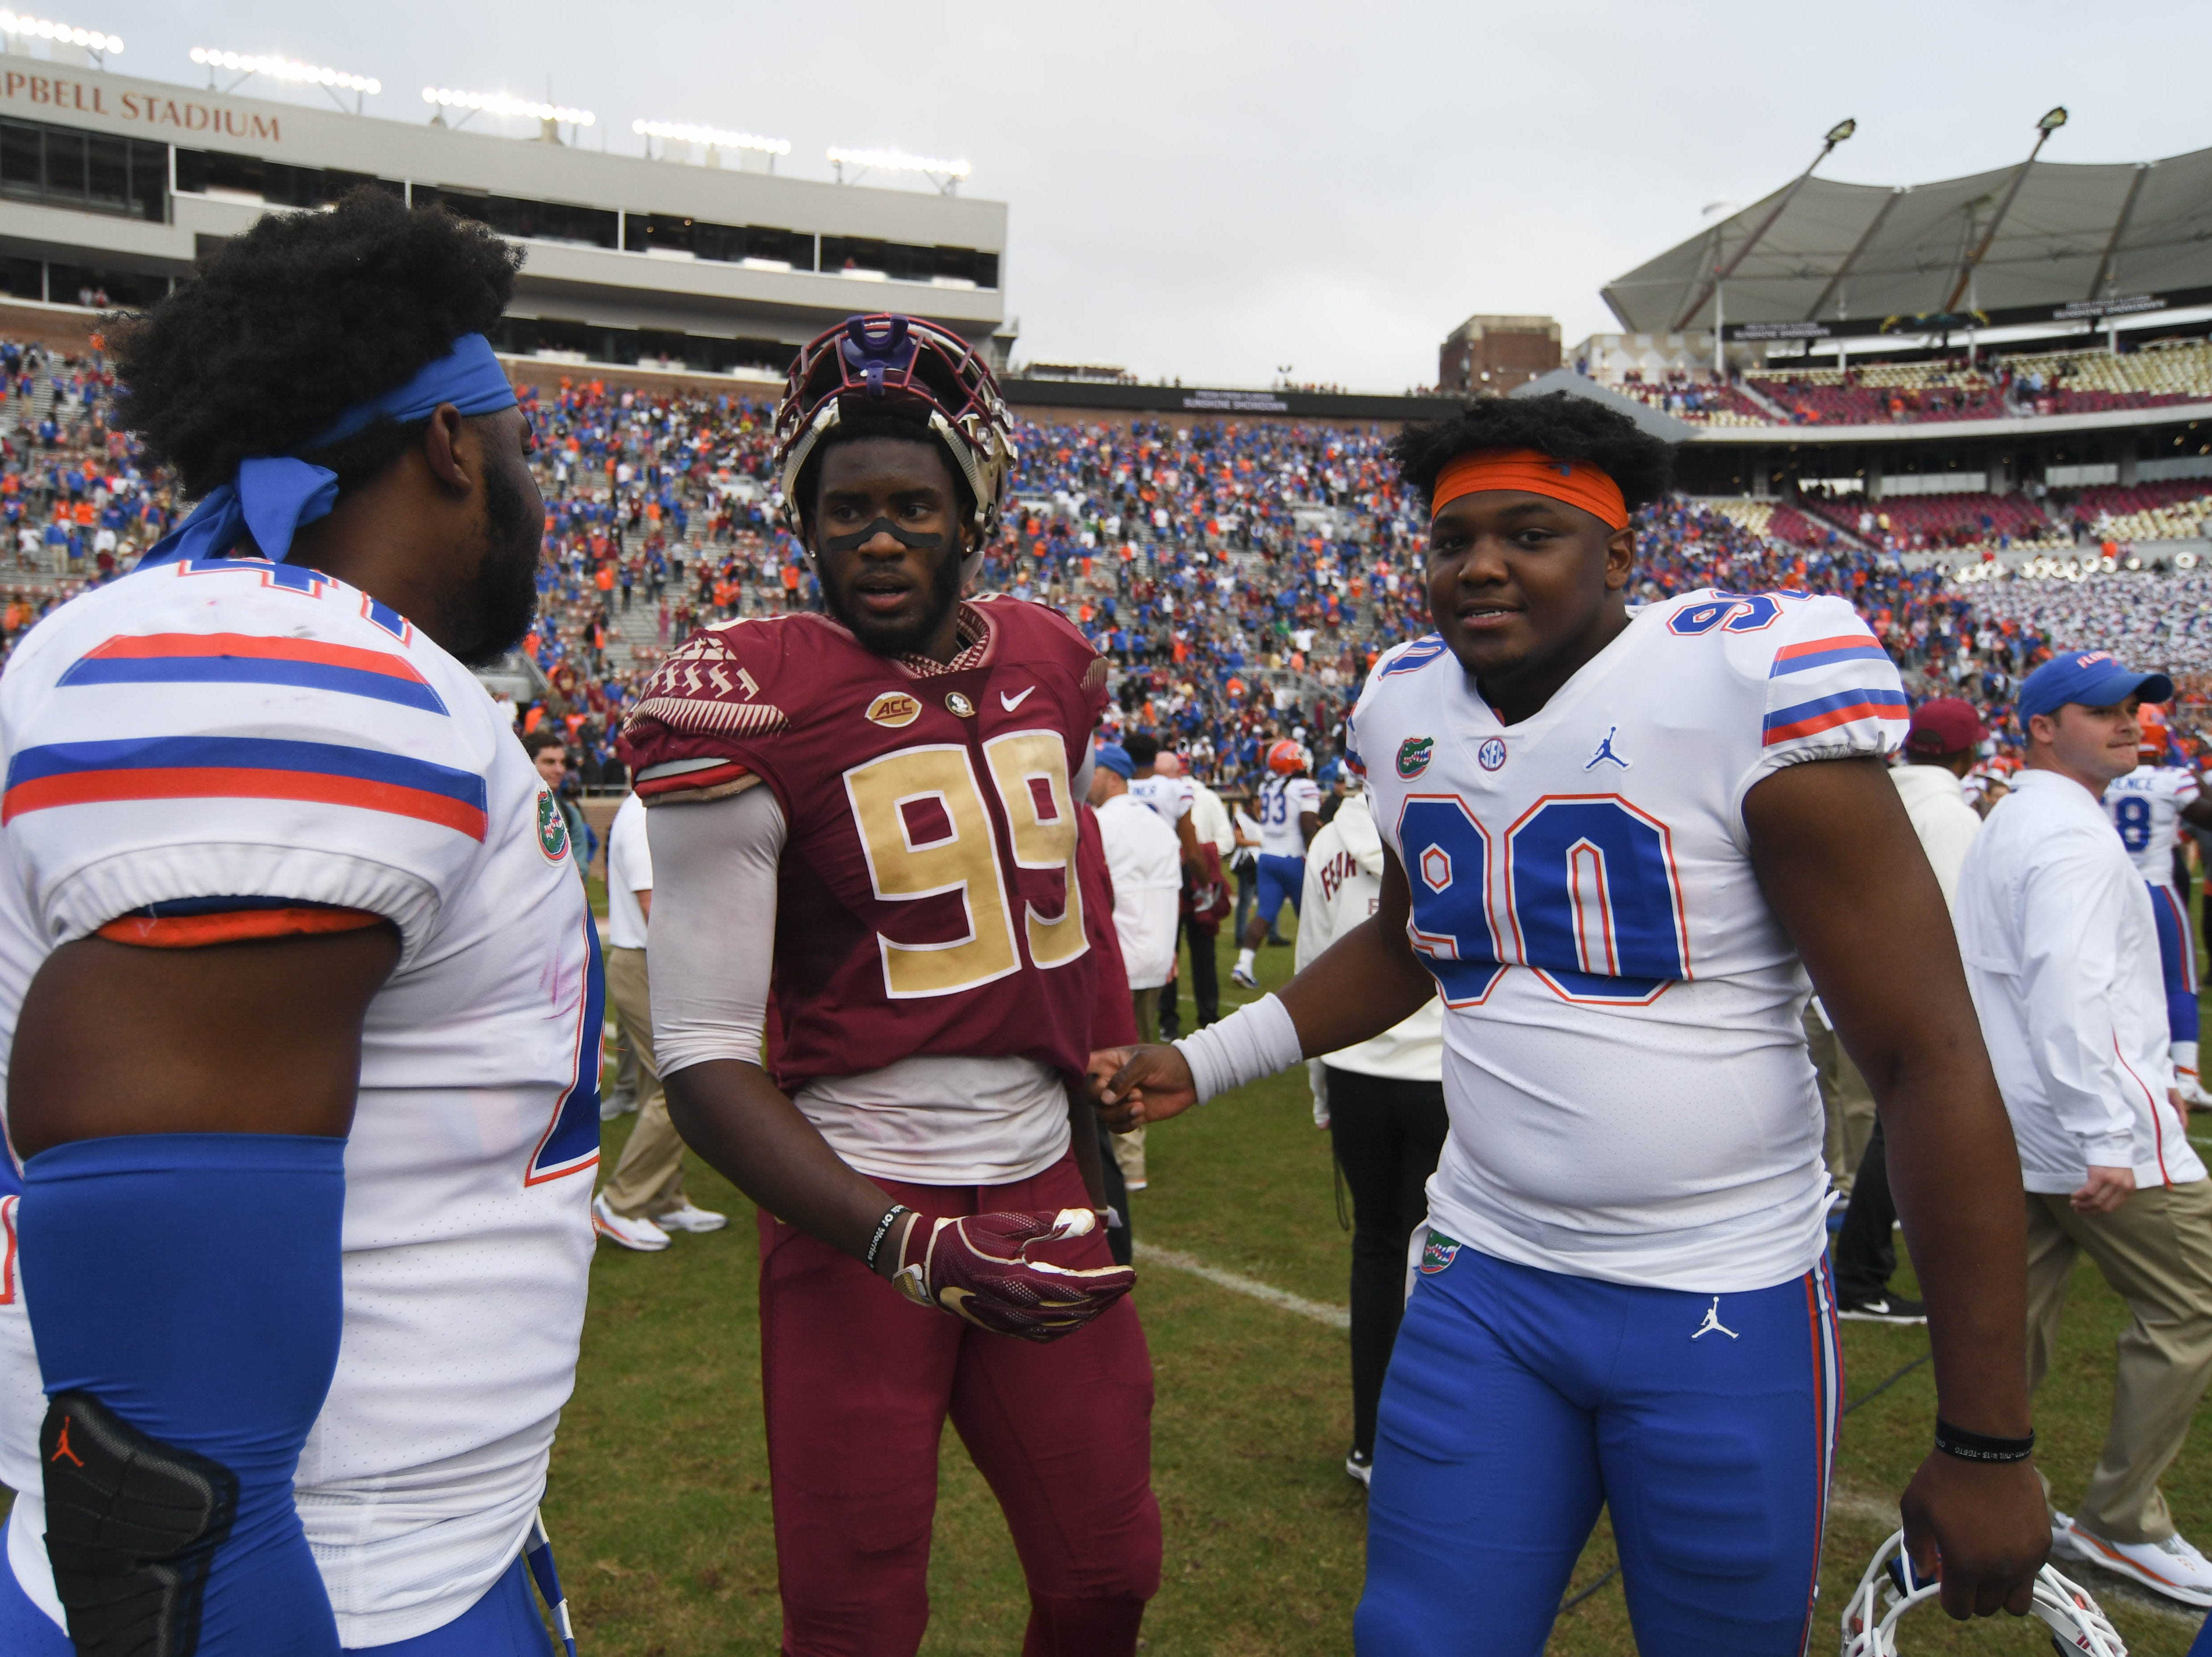 FSU junior defensive end Brian Burns (99) with some UF players after the FSU 41-14 loss to the Gators on November 24, 2018.